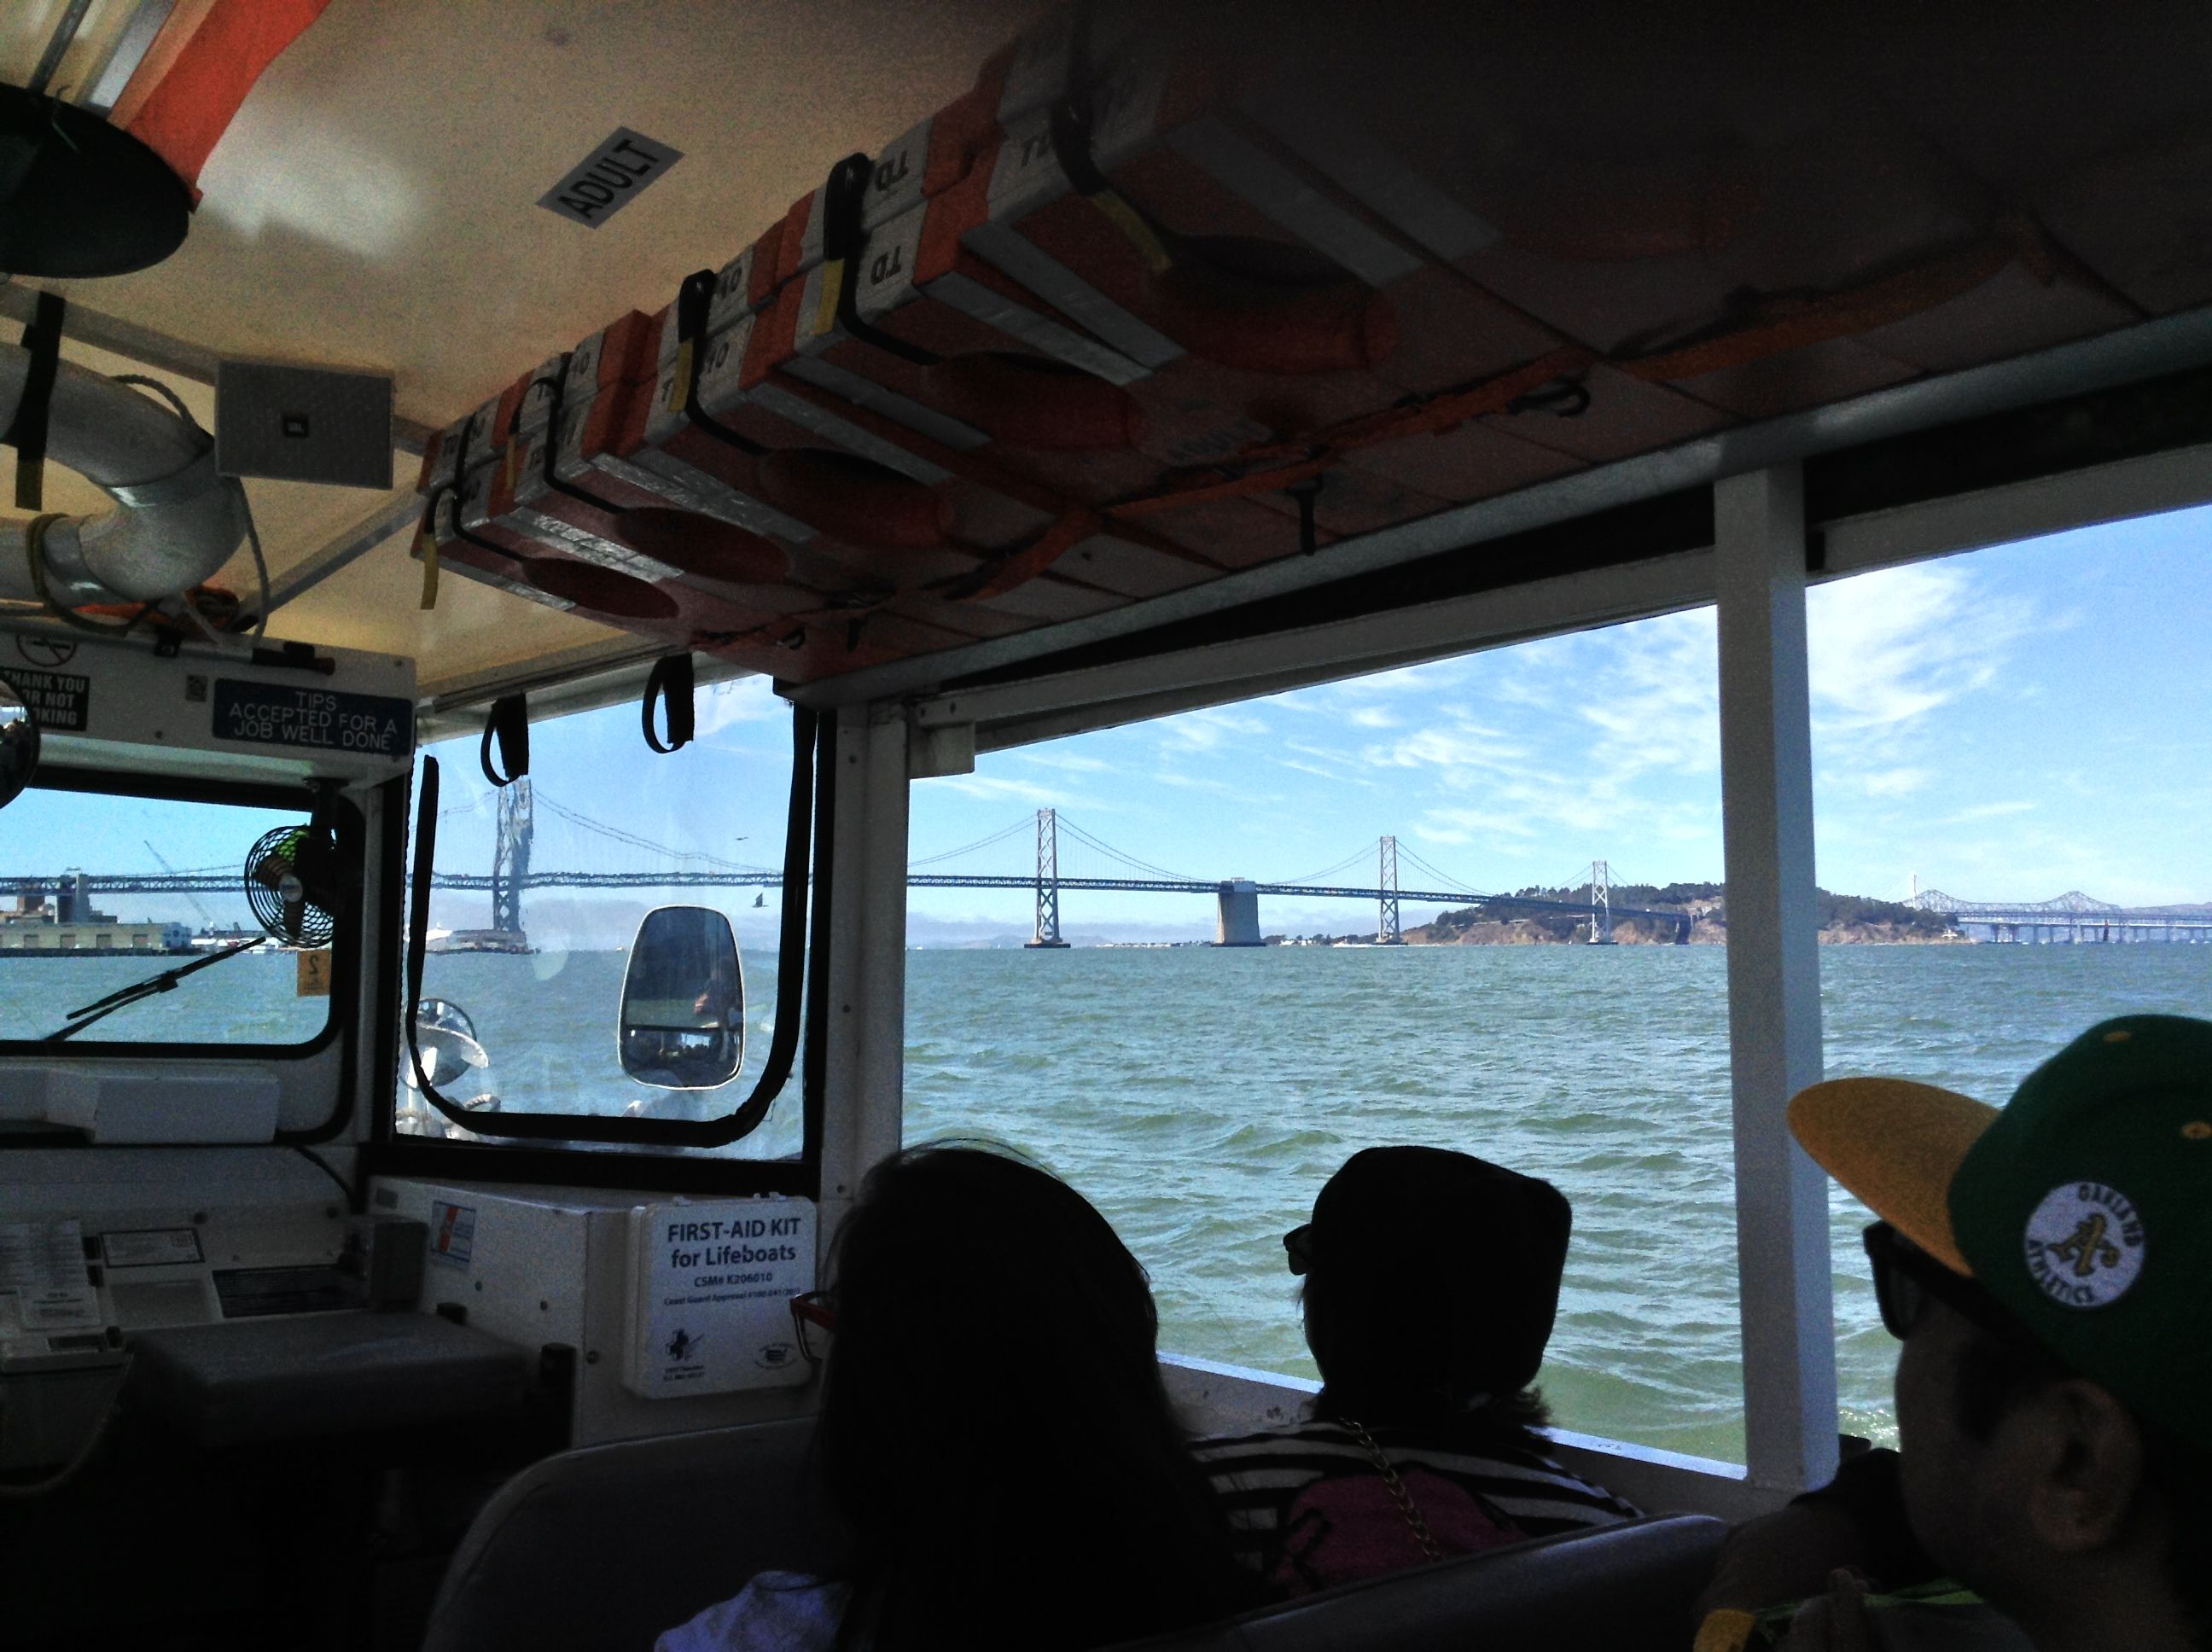 View of the Bay Bridge - taken from the Ride the Ducks Tour